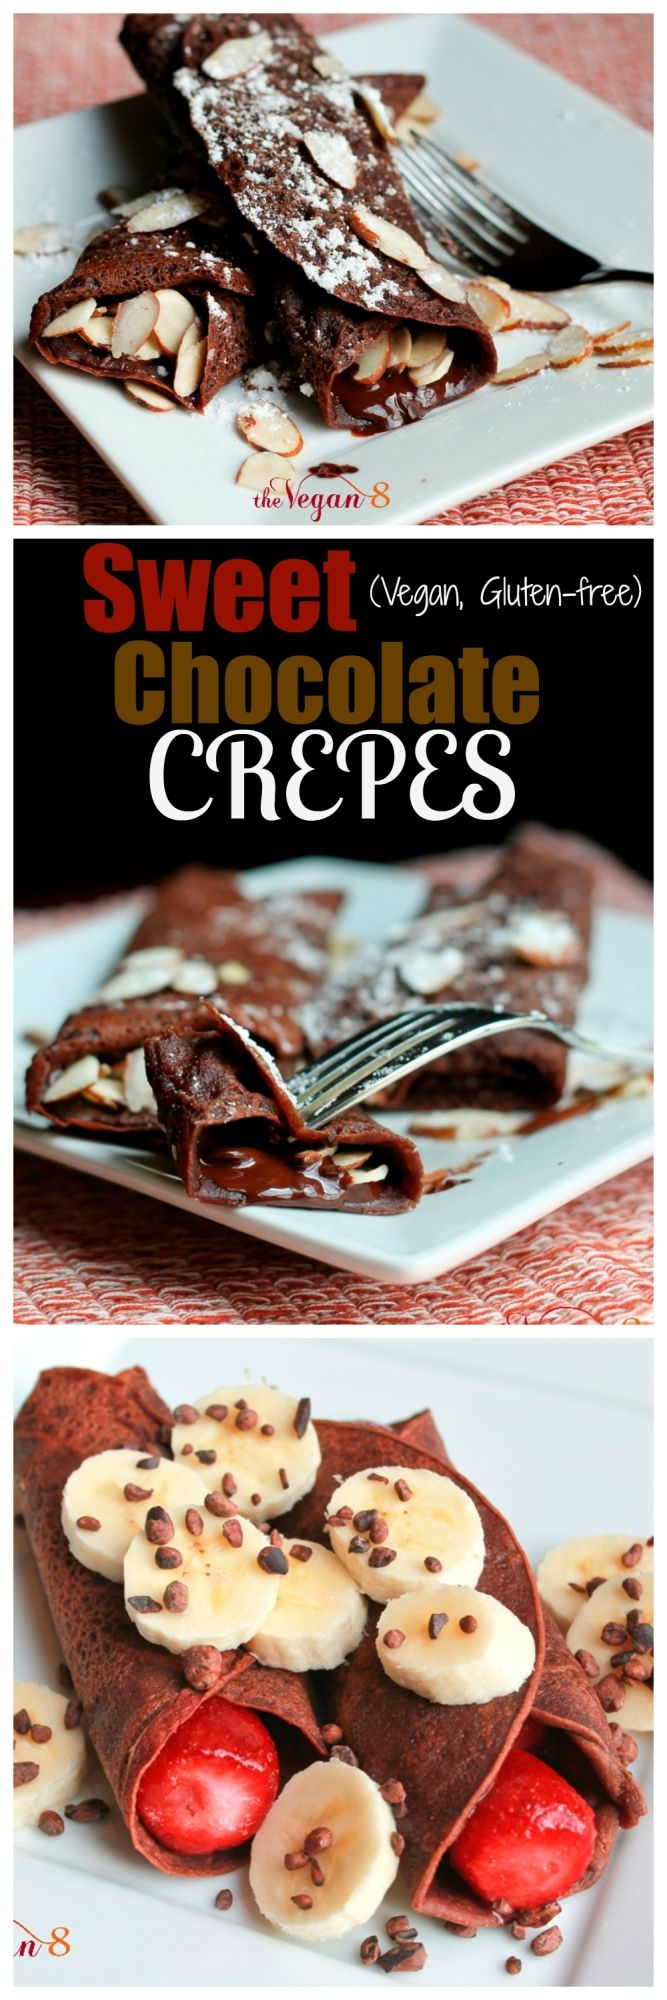 I am so excited to share this recipe with you today! I am guest posting today for Angela over at Canned-Time. I love Angela's blog and all of her amazing recipes. She is truly creative. I have tried to make vegan, gluten-free and oil-free crepes several times. The same issues kept arising...wrong texture or falling apart. After all, traditional crepes are nothing but eggs